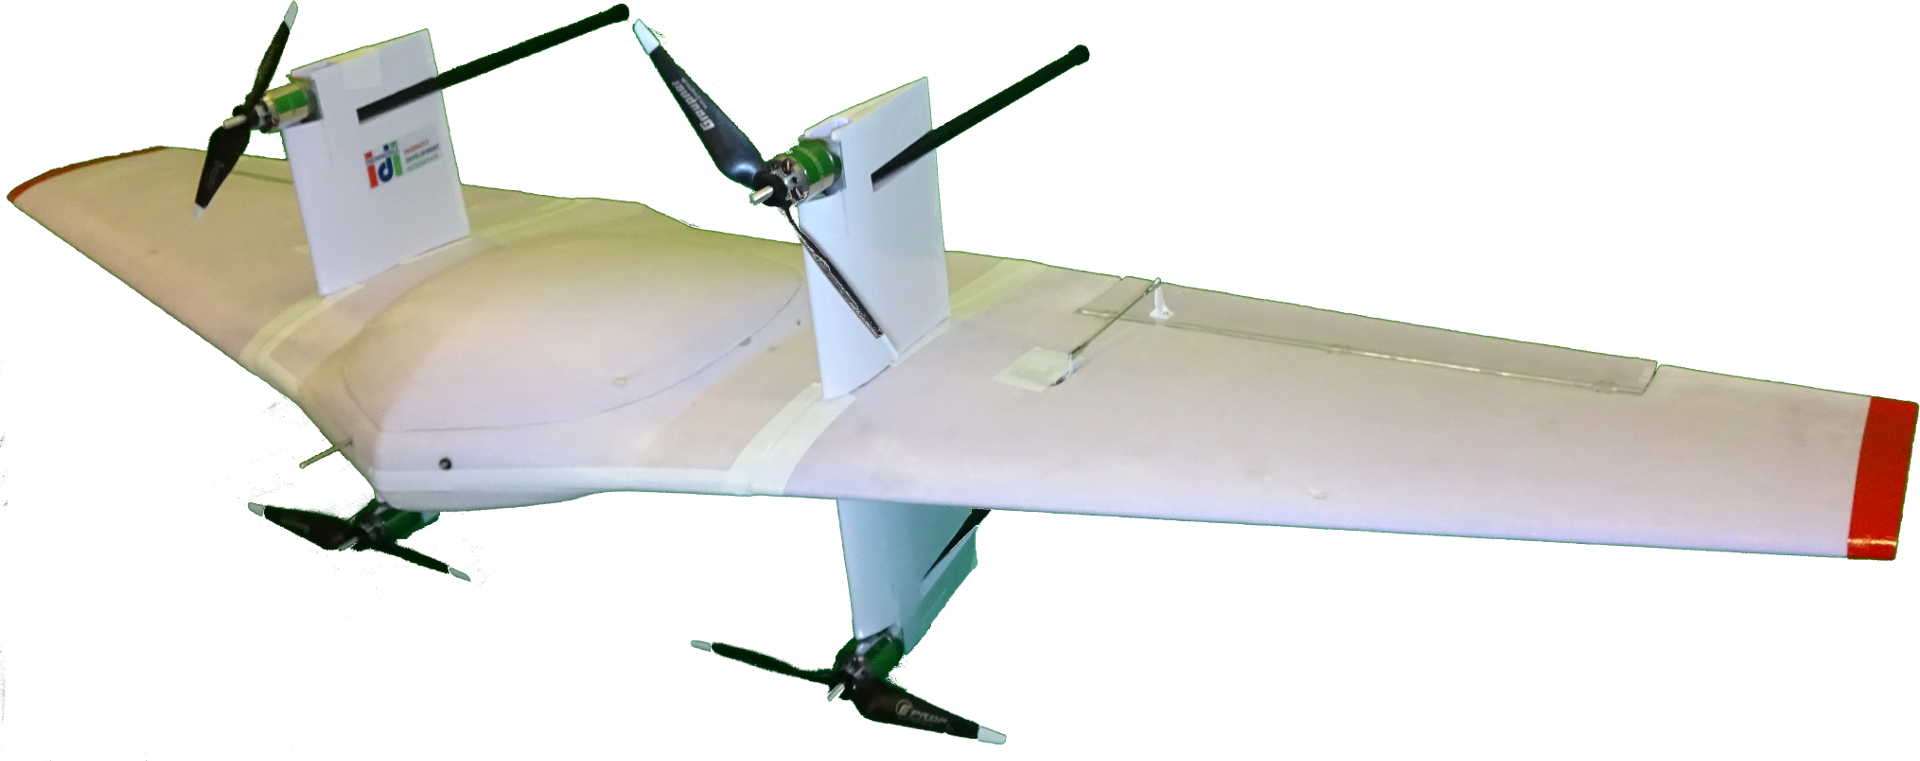 The Transition From Hover To Horizontal Flight For DrOne Small UAS Has Been Demonstrated With Fourth PoC Prototype